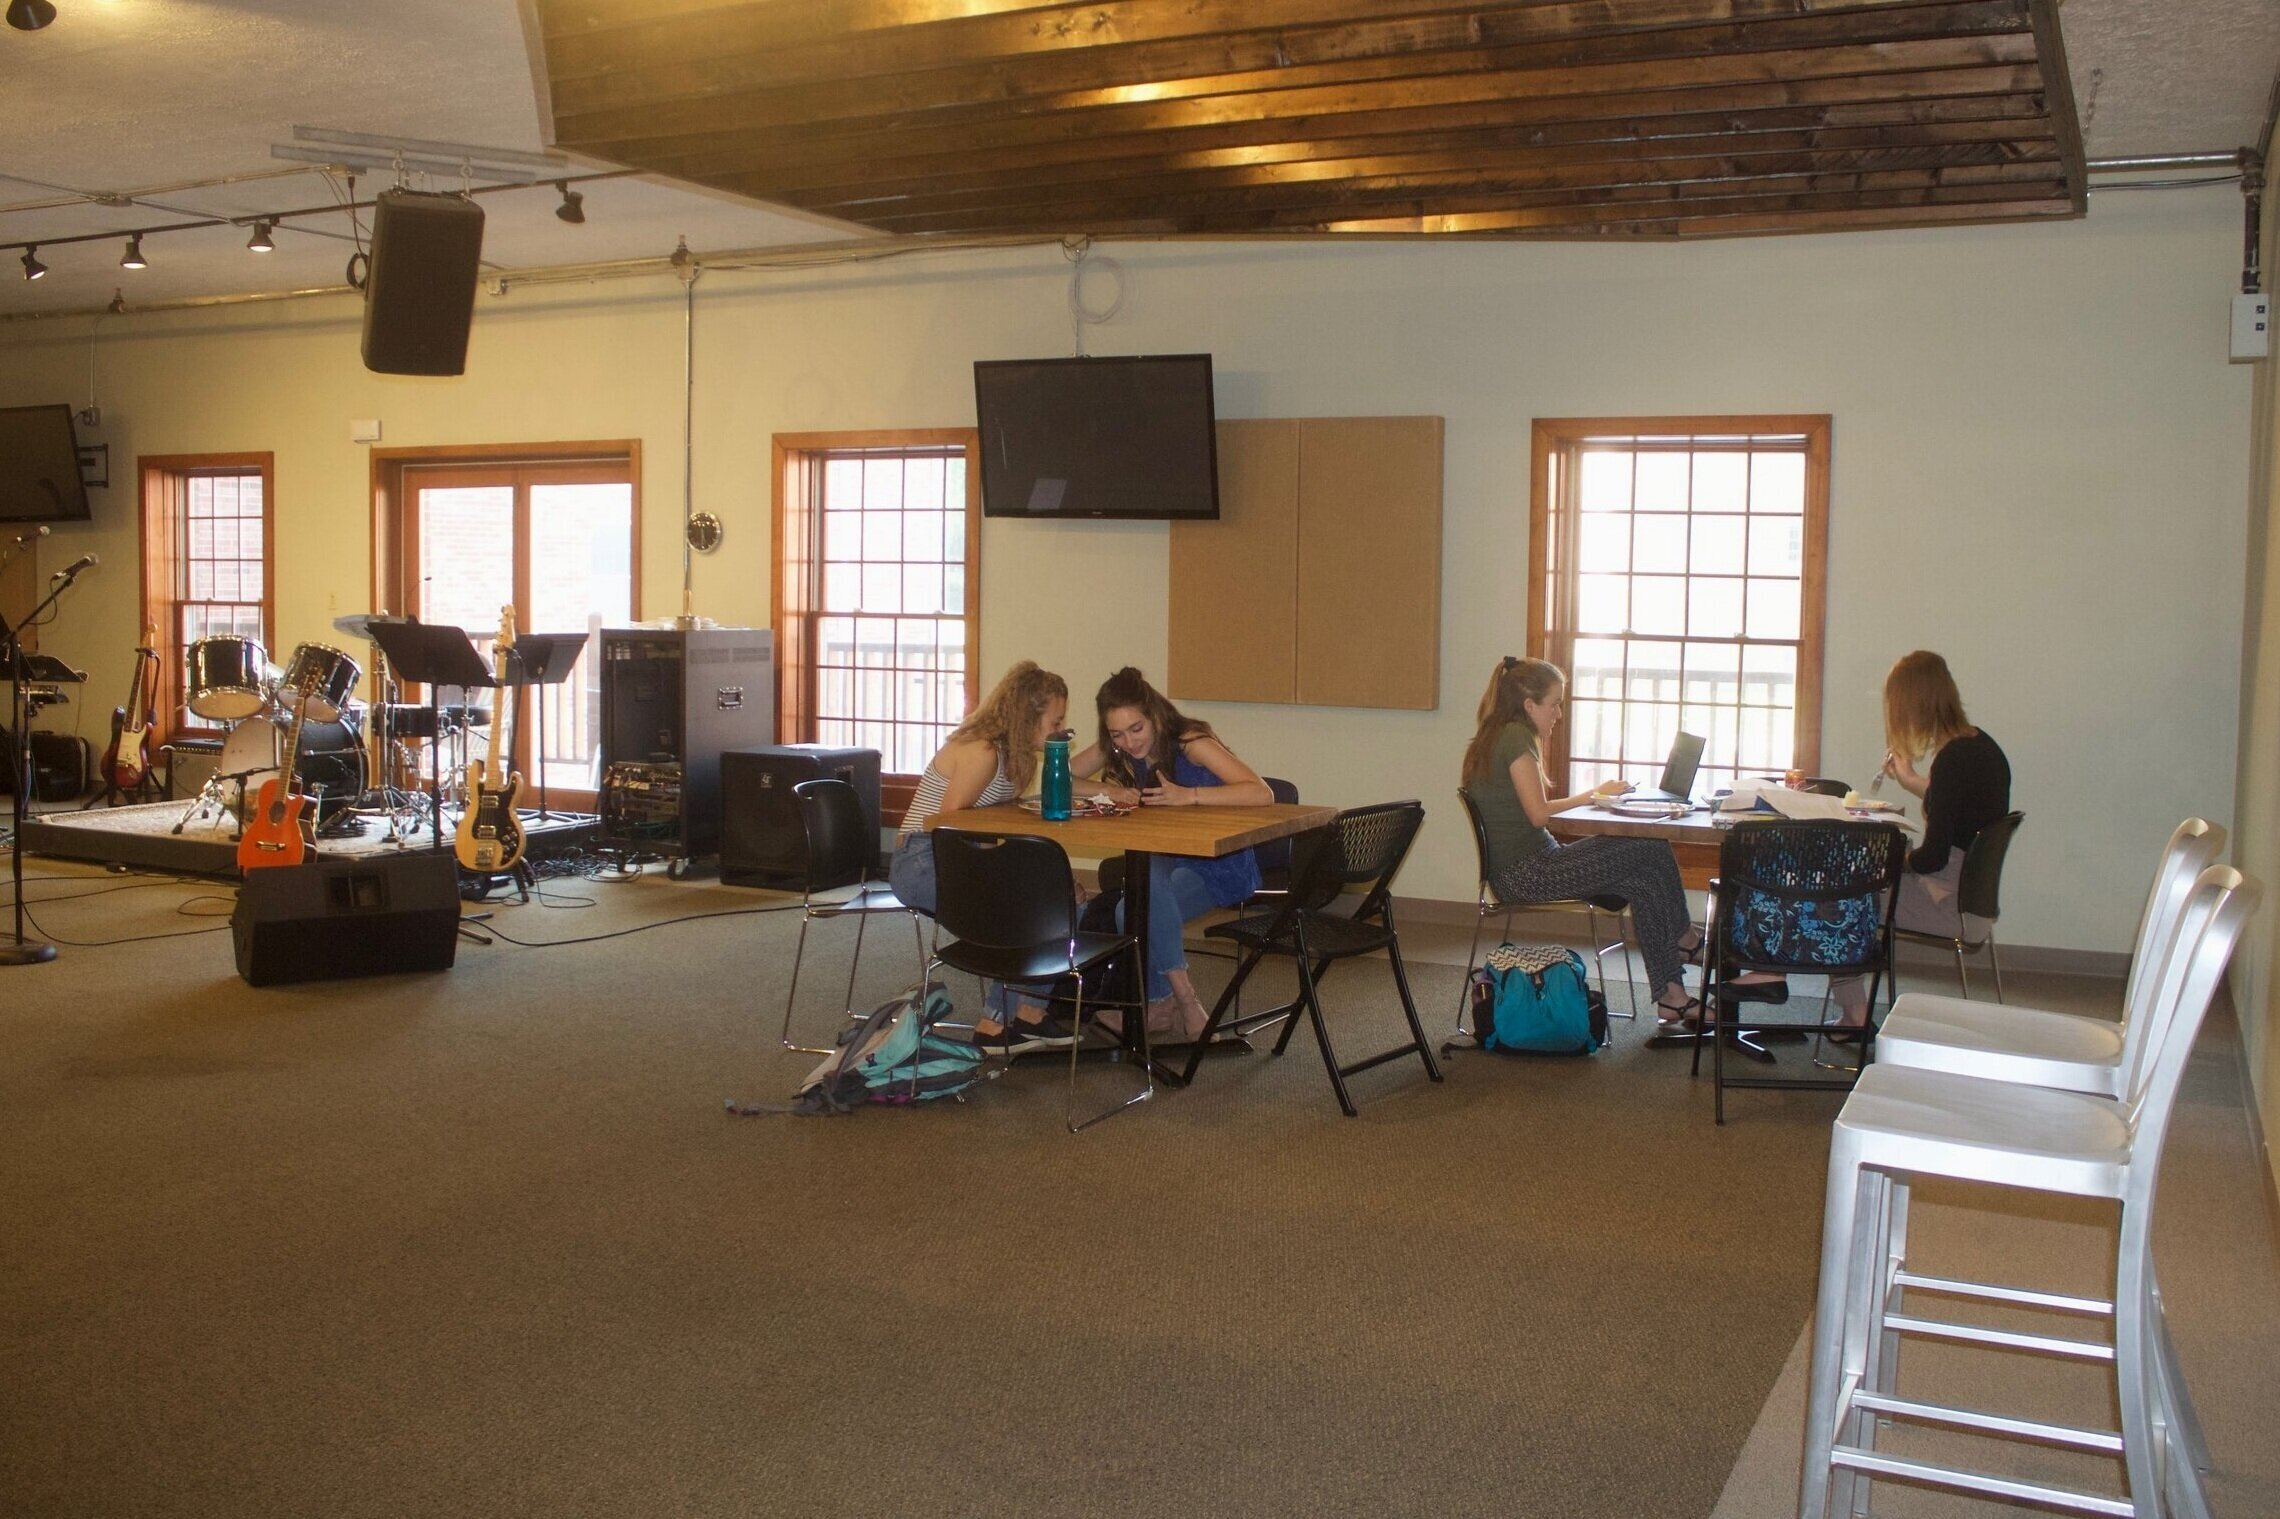 Students Studying in Great Room